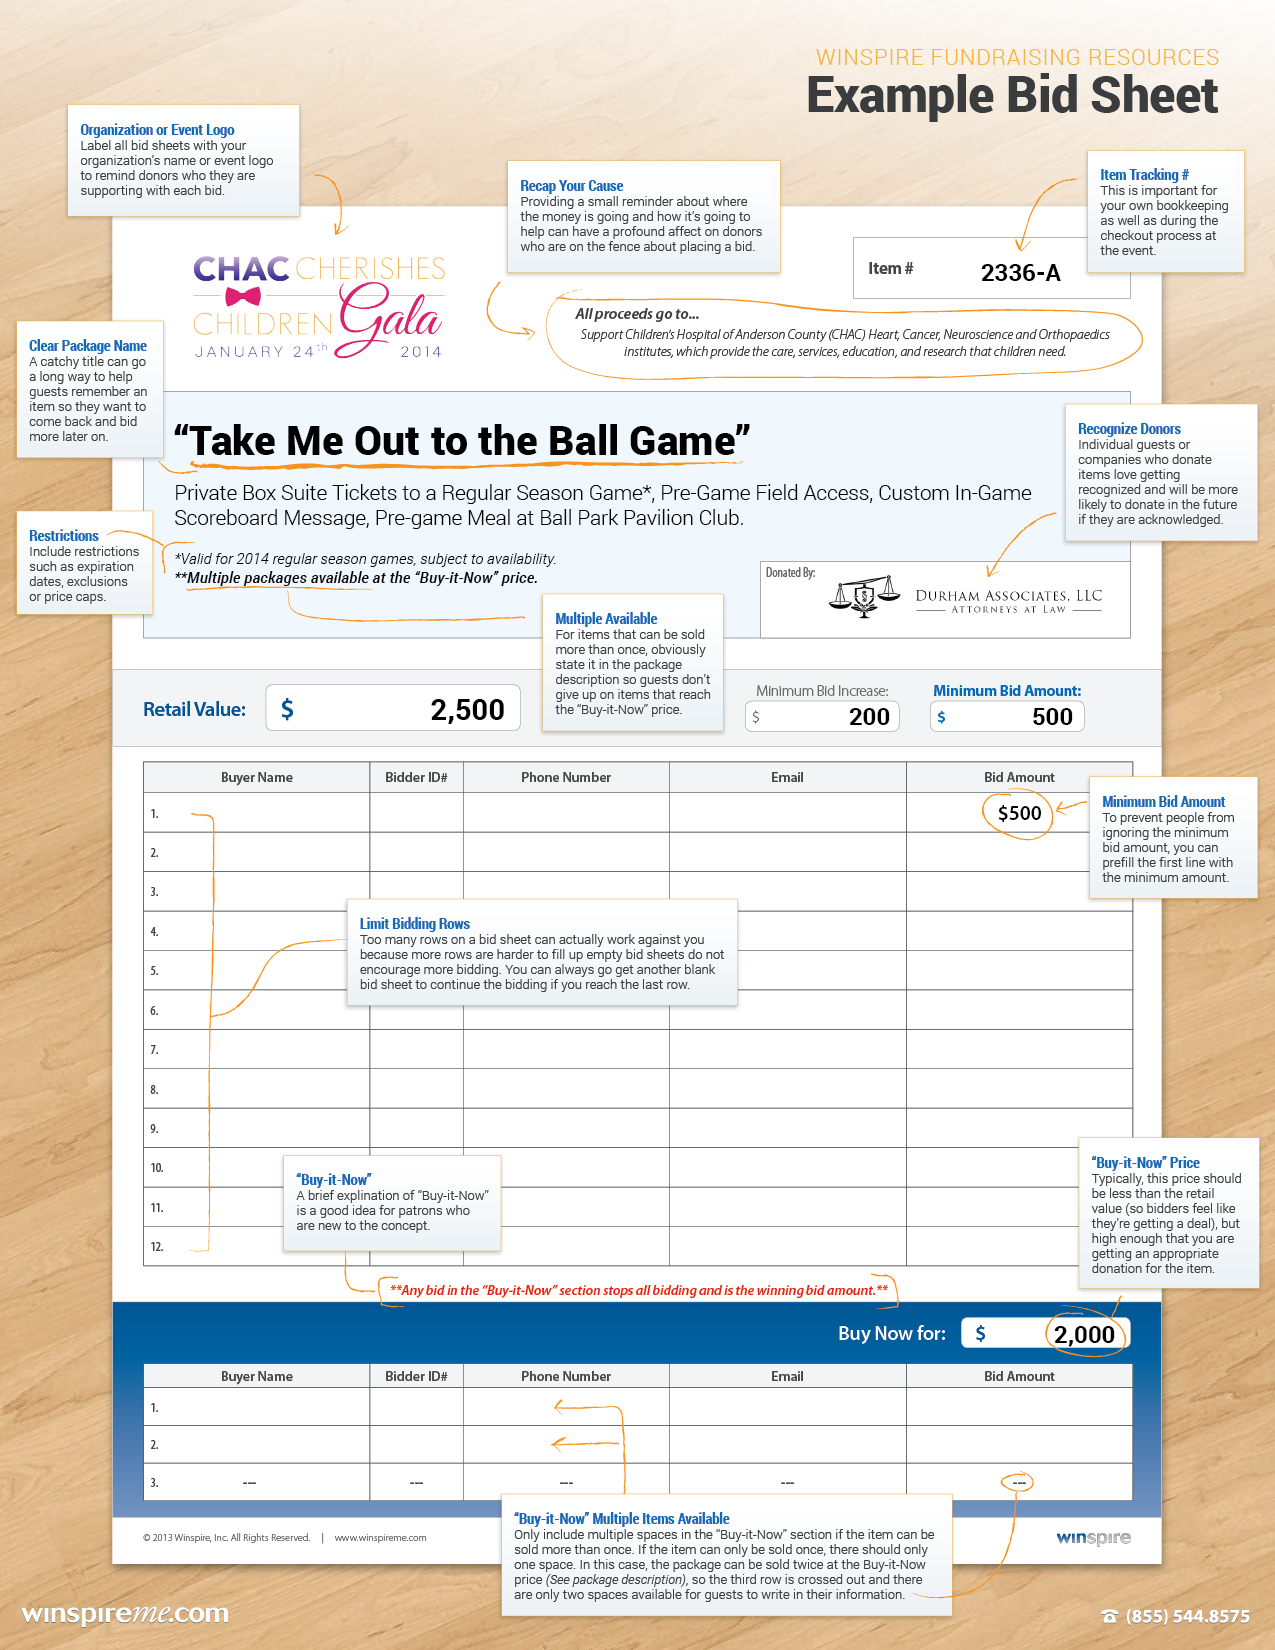 Bid Sheets 101: Improve Your Silent Auction With Better Bid Sheets